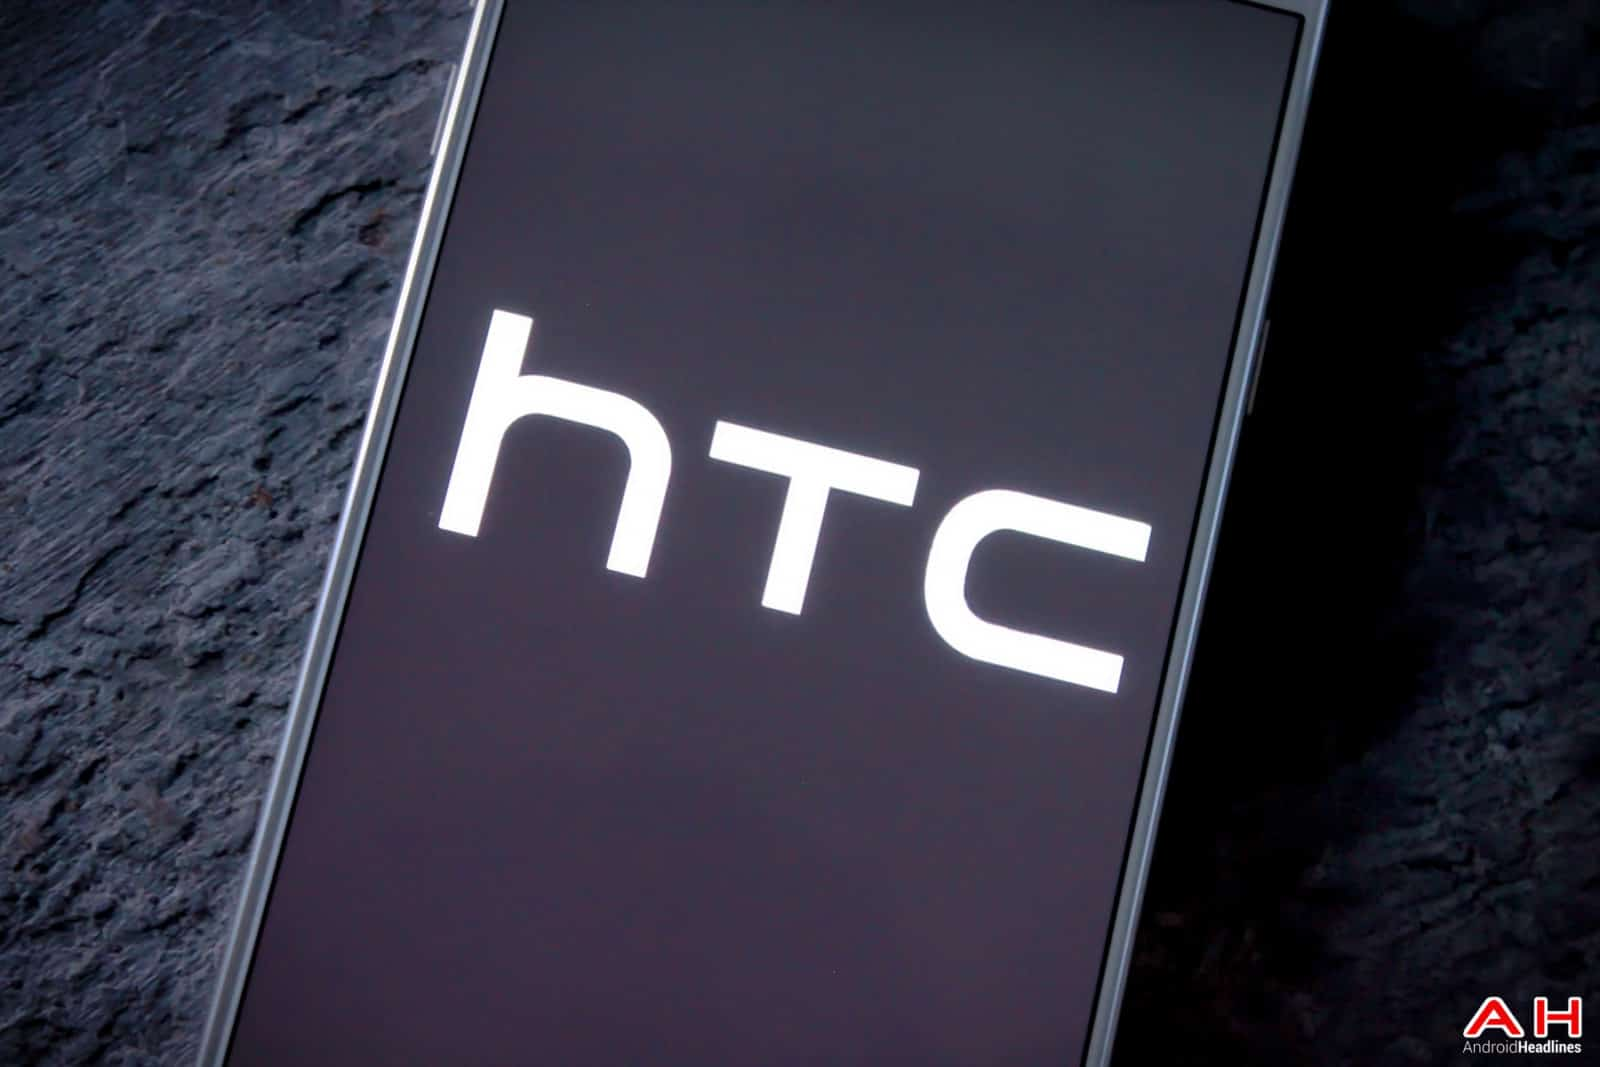 AH 2015 HTC LOGO Chris Sept-7